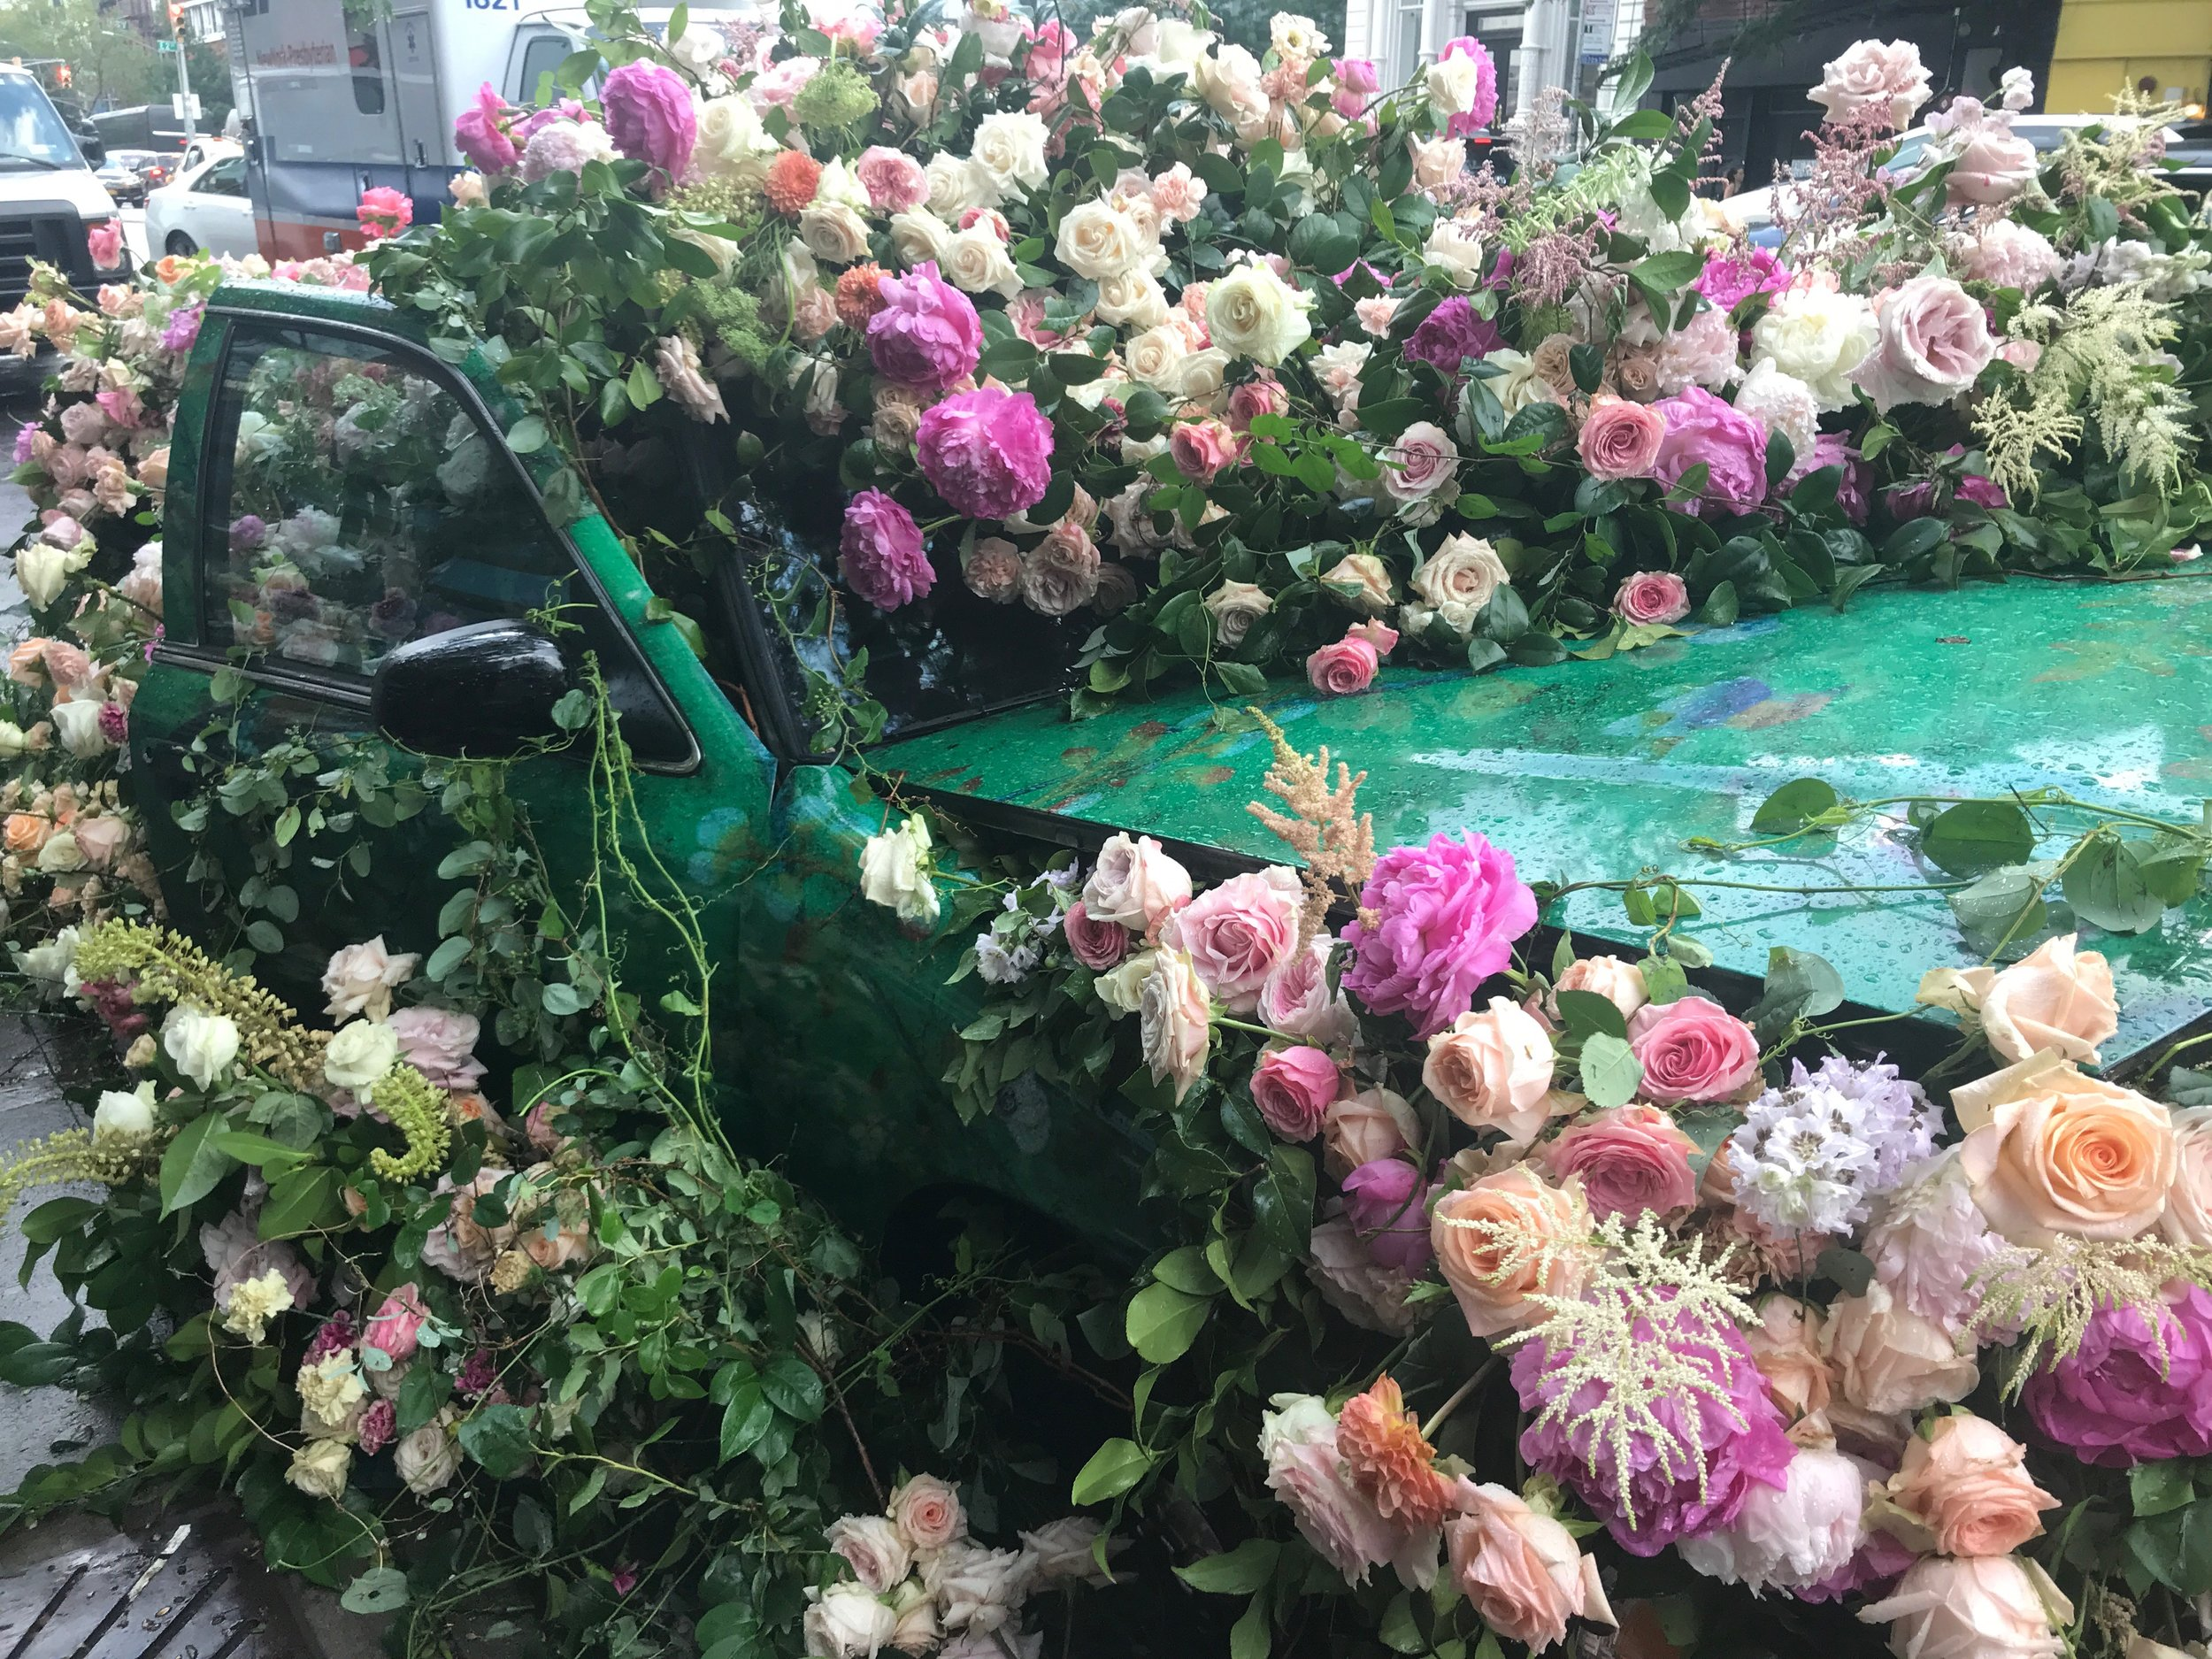 Floral Car Sculpture for HBO Sharp Objects